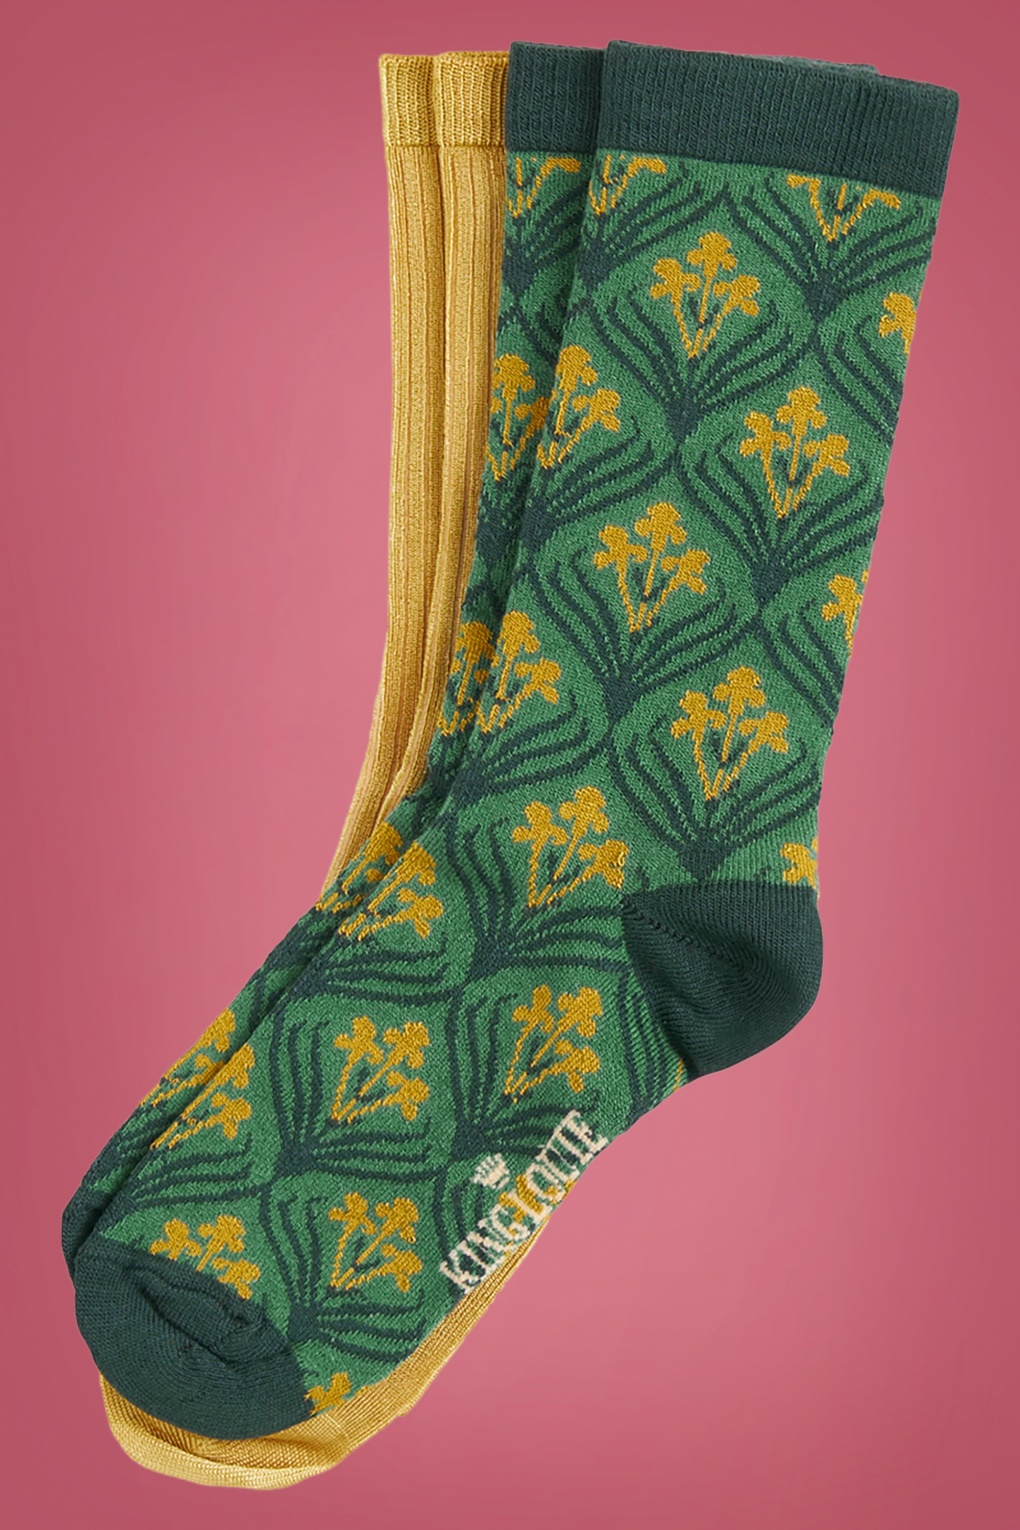 1960s Style Dresses, Clothing, Shoes UK 60s Dynasty Socks in Fir Green £13.08 AT vintagedancer.com